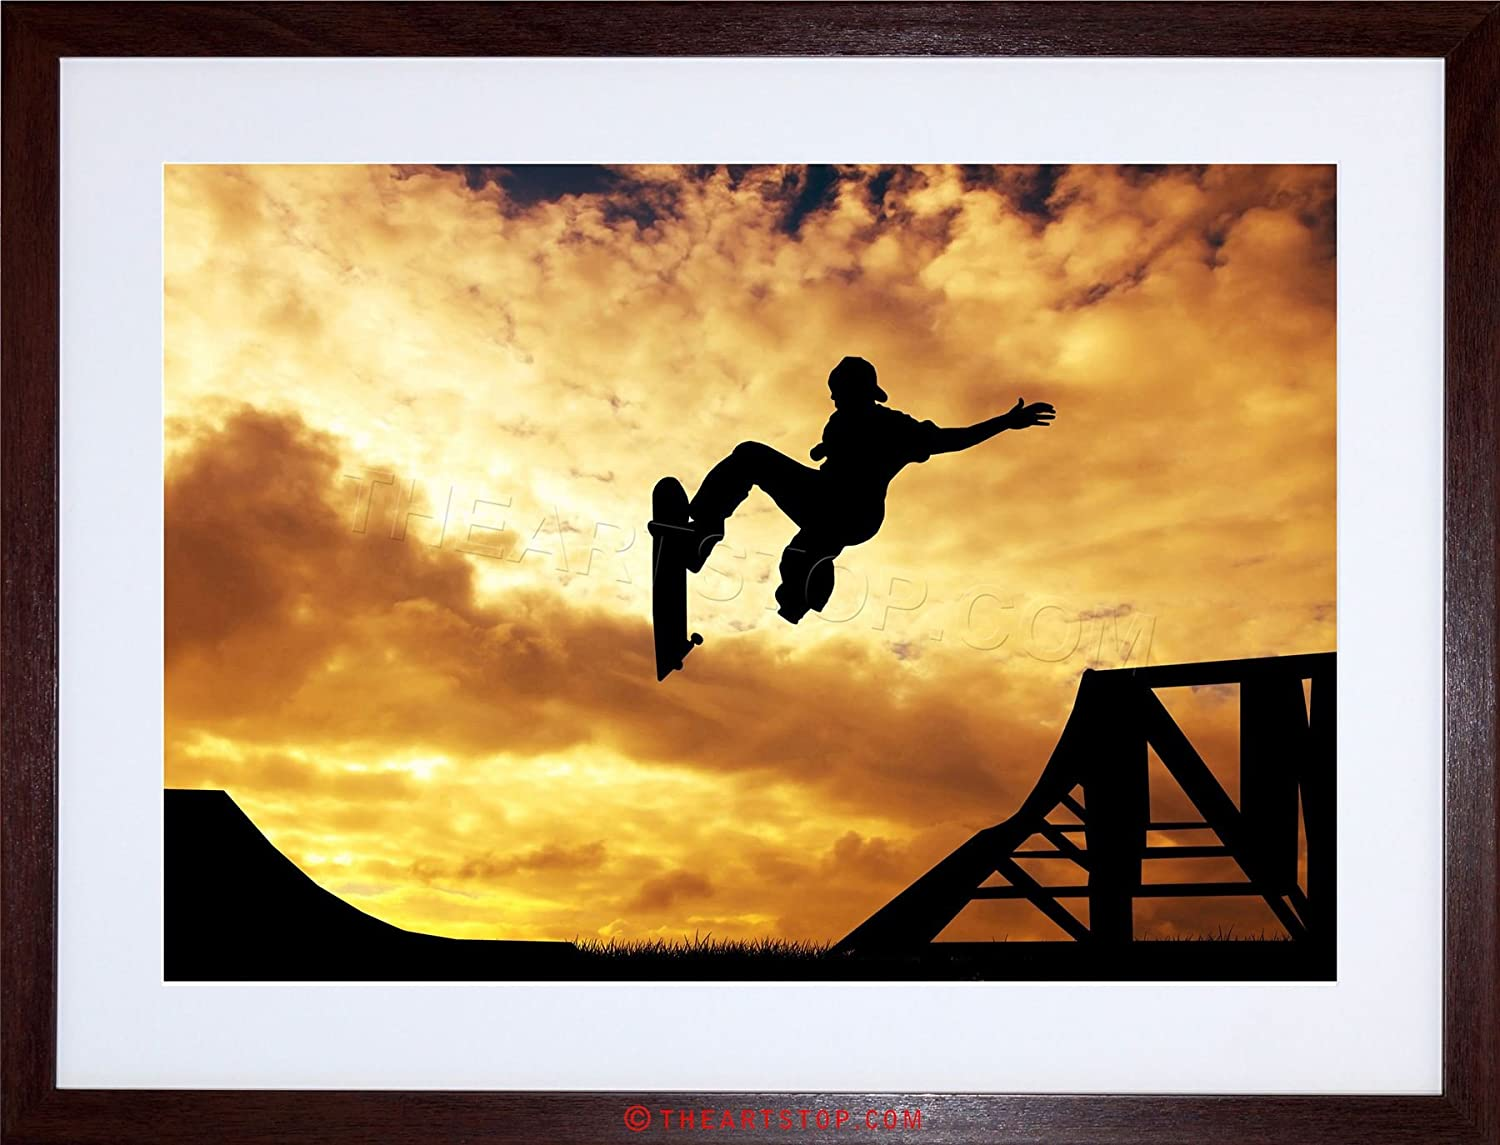 Amazon.com: PHOTO COMPOSITION SPORT SUNSET SKATEBOARD SILHOUETTE ...